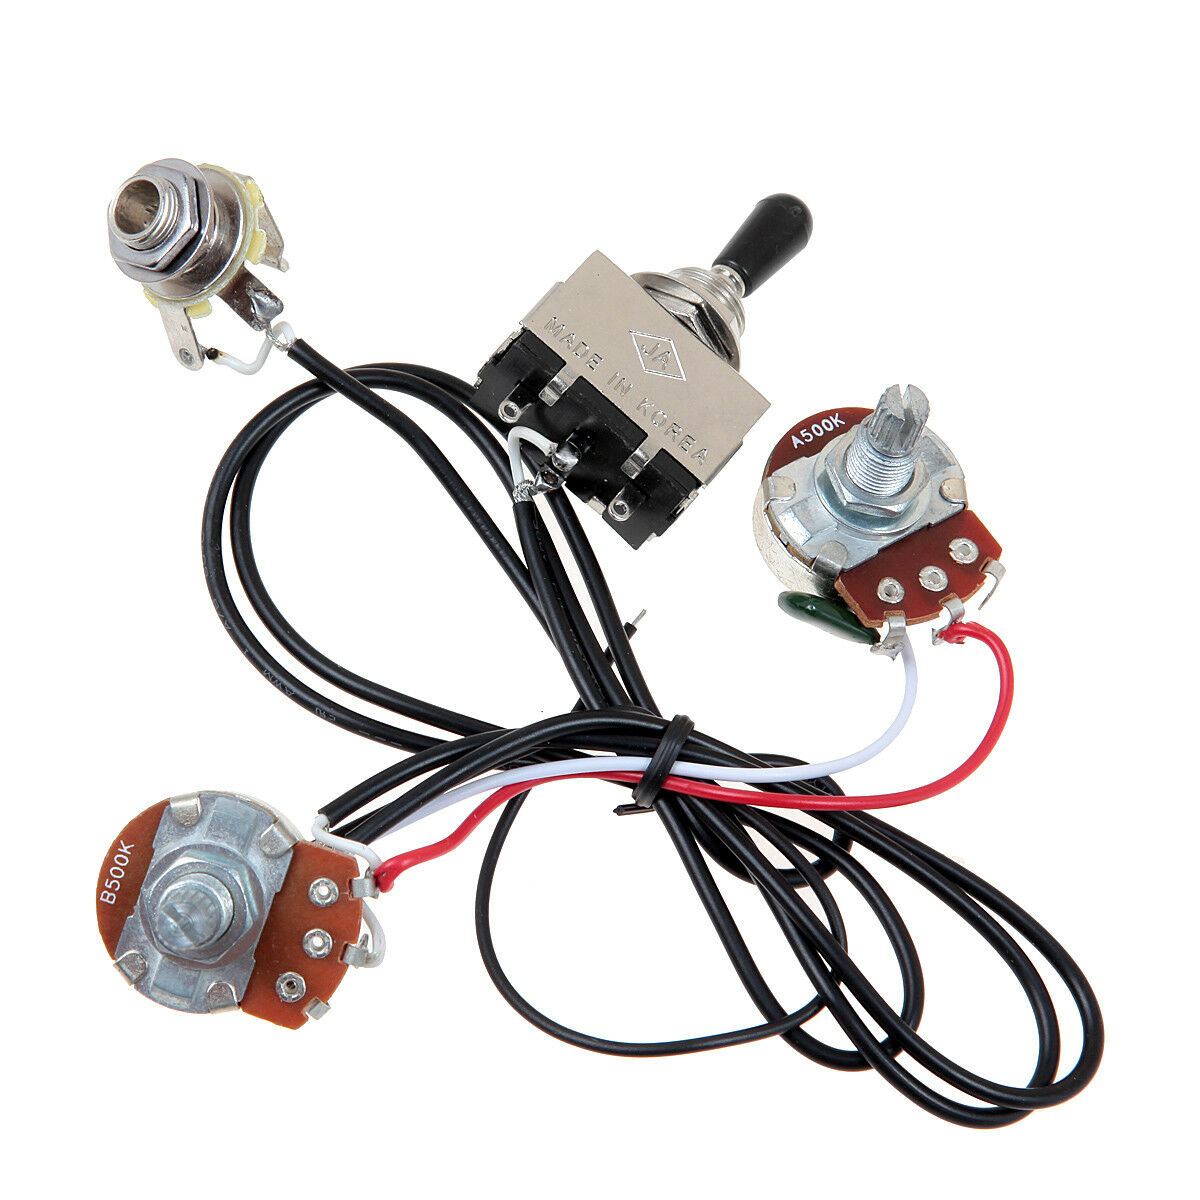 details about guitar wiring harness prewired two pickup 500k pots 3 way toggle switch chrome10 Sets Two Pickup Guitar Wiring Harness 3 Way Blade Switch 500k W #6